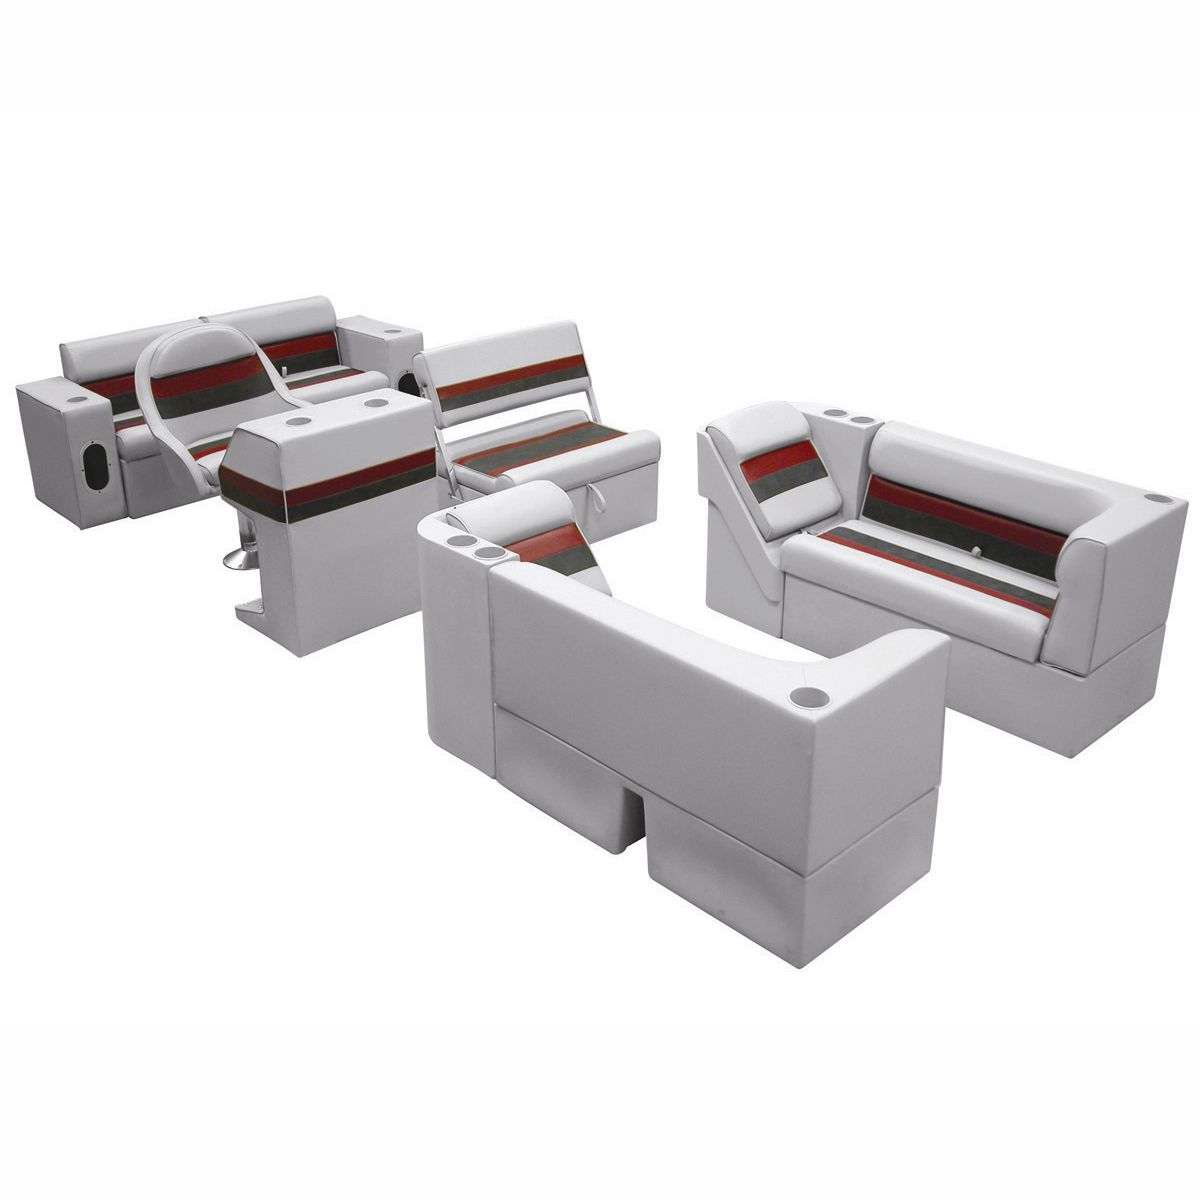 Deluxe Pontoon Furniture w/Classic Base - Complete Boat Package E, Gray/Red/Char